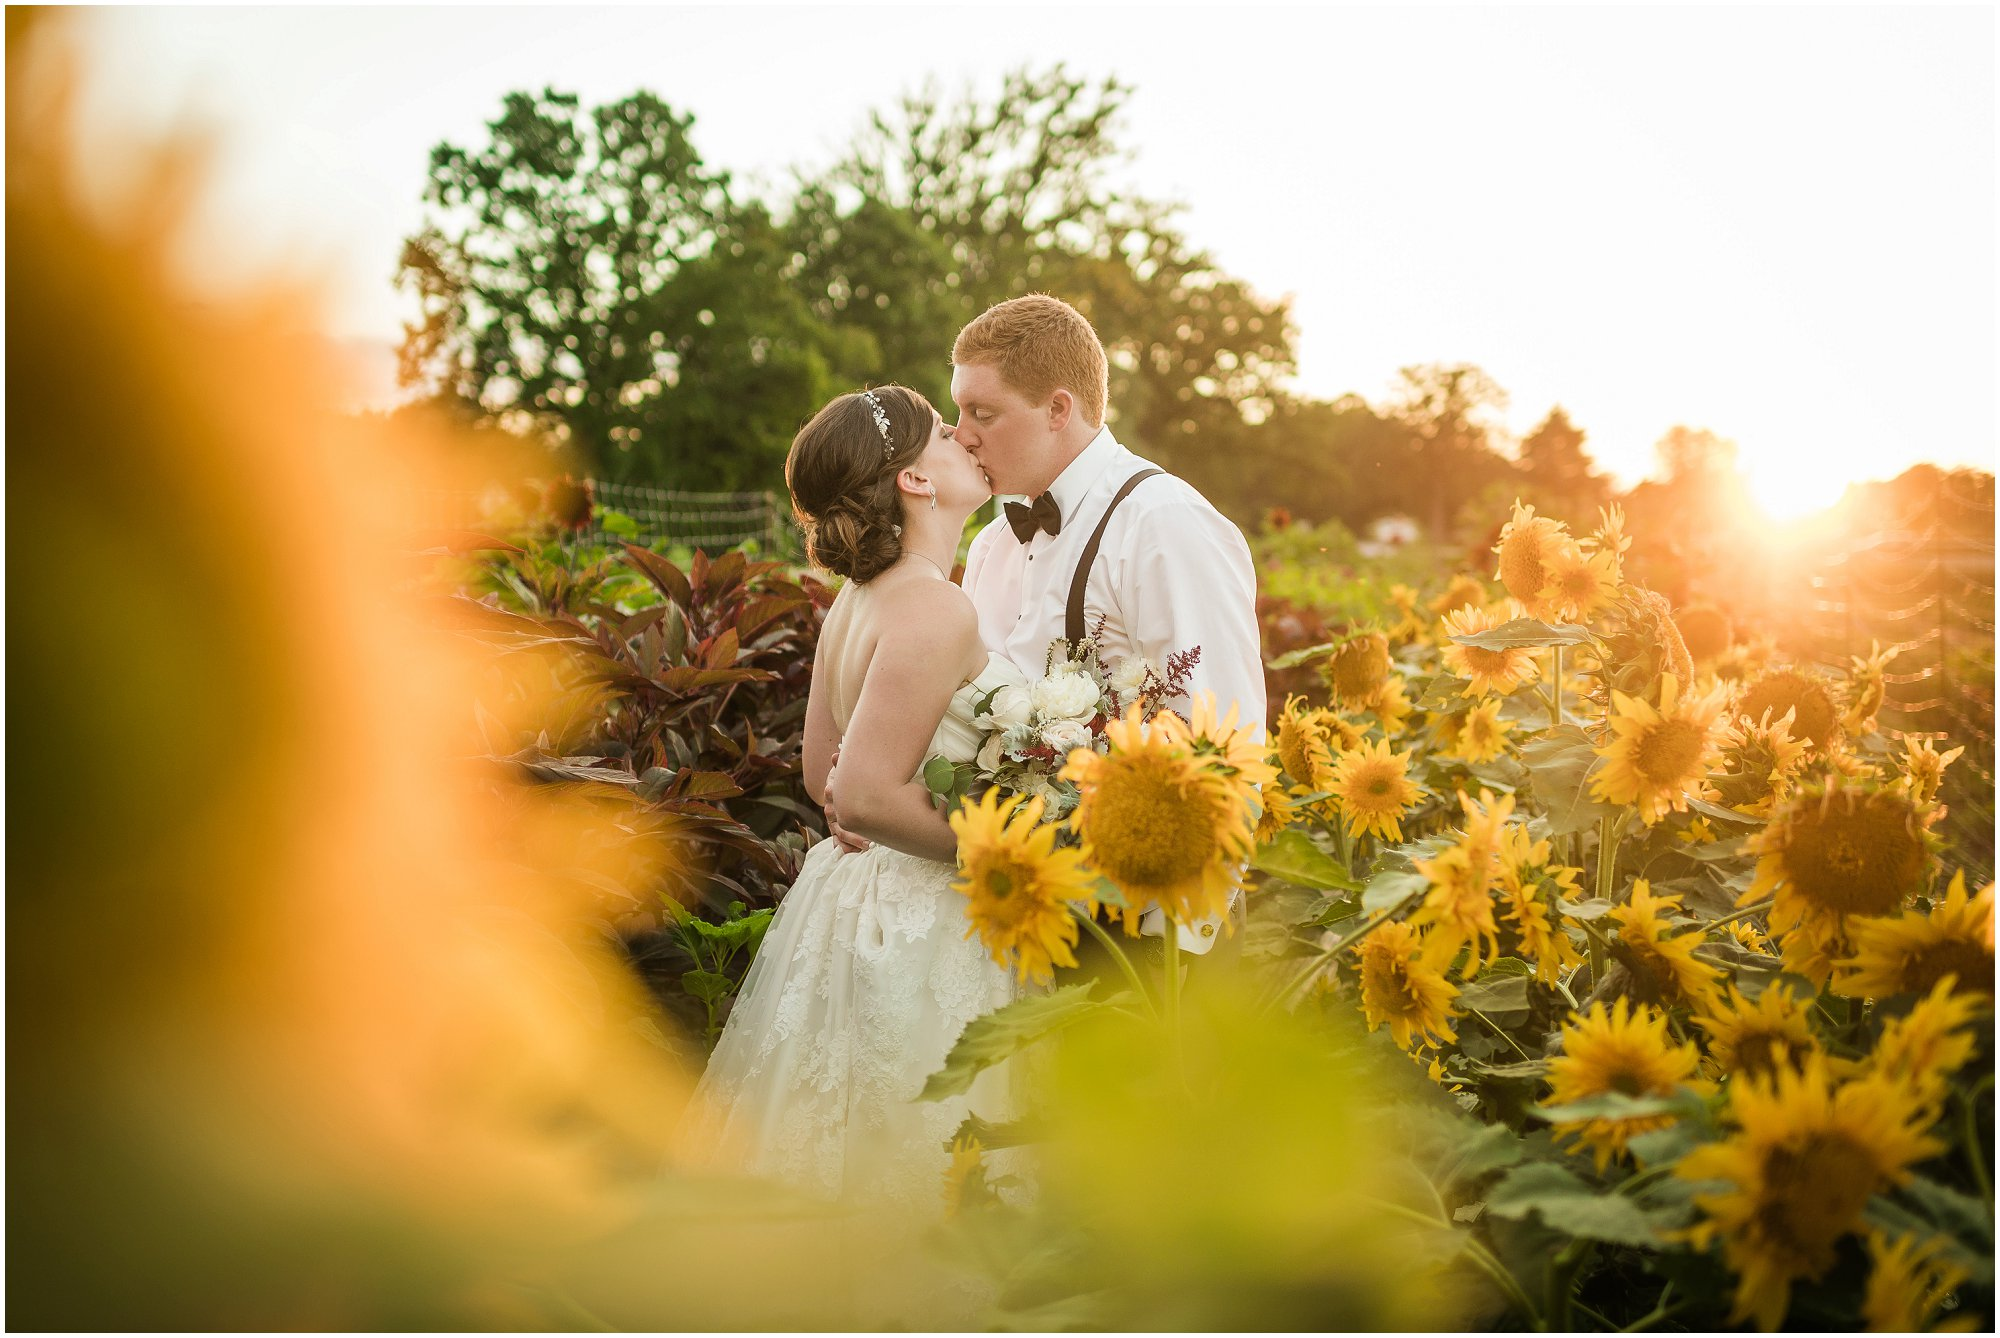 cornman-farms-wedding-michigan-barn-wedding_0998.jpg